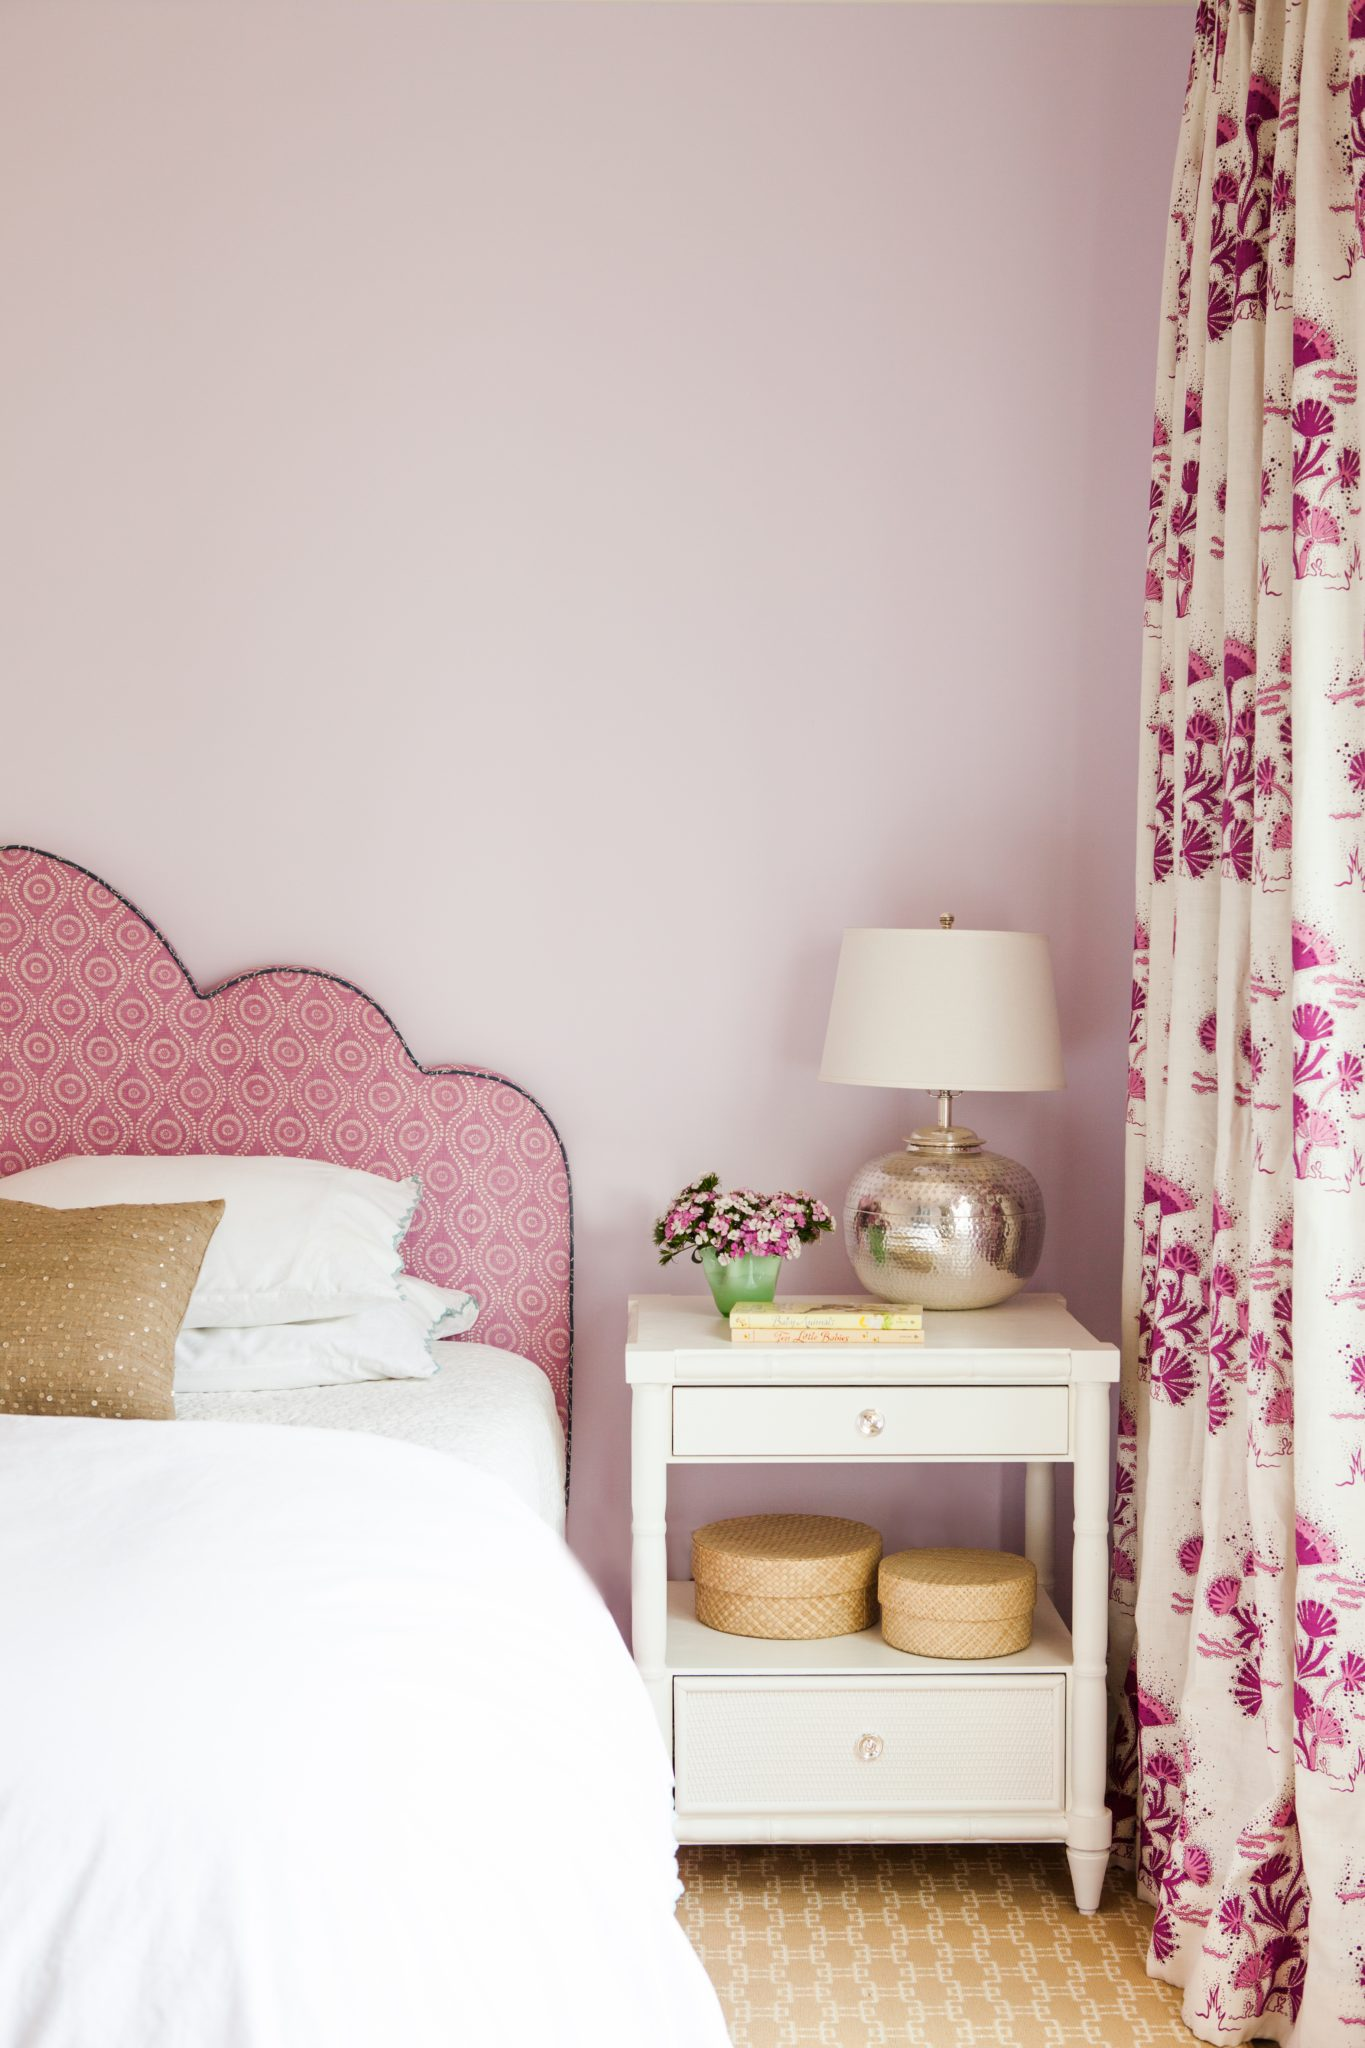 Presidio Heights bedroom in shades of violet and pink with fresh floral drapery by Caitlin Moran Interiors